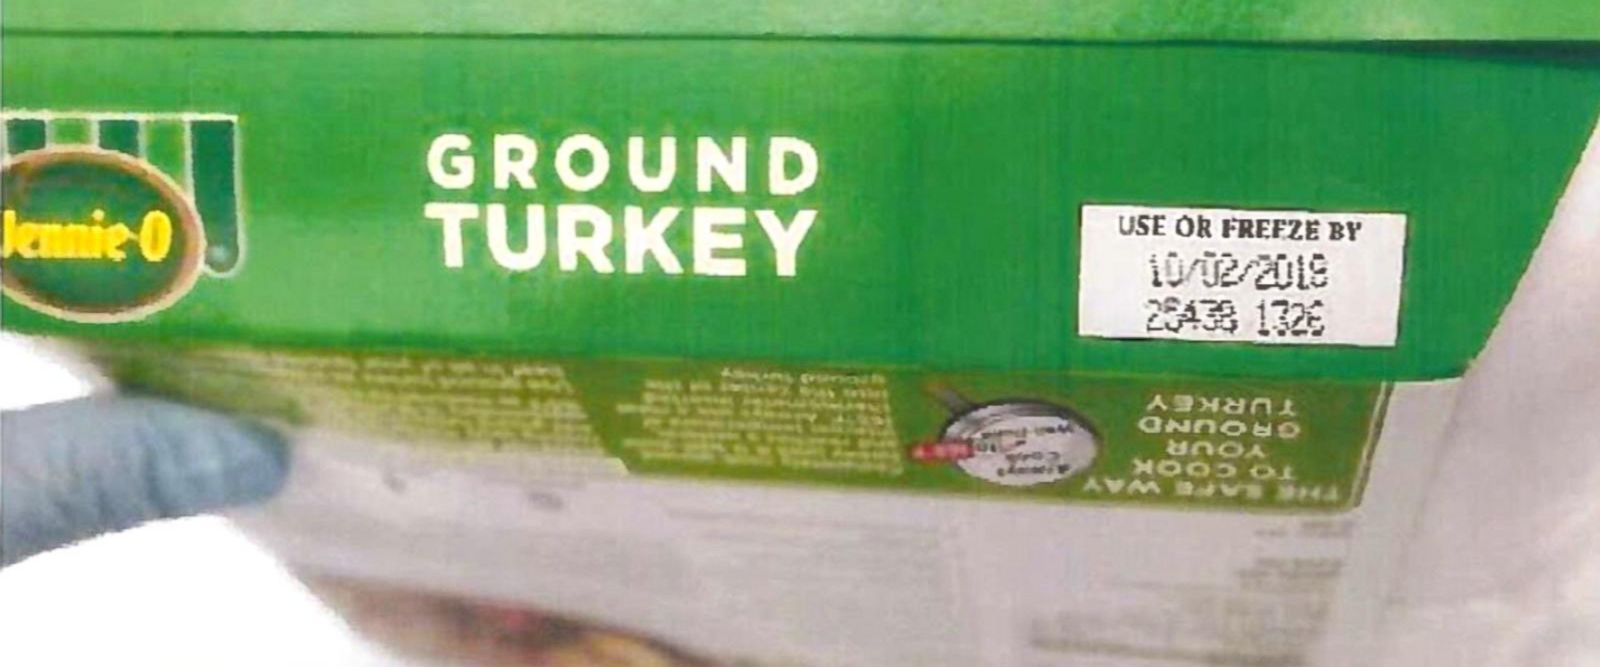 VIDEO: 91,000 pounds of ground turkey recalled due to possible Salmonella